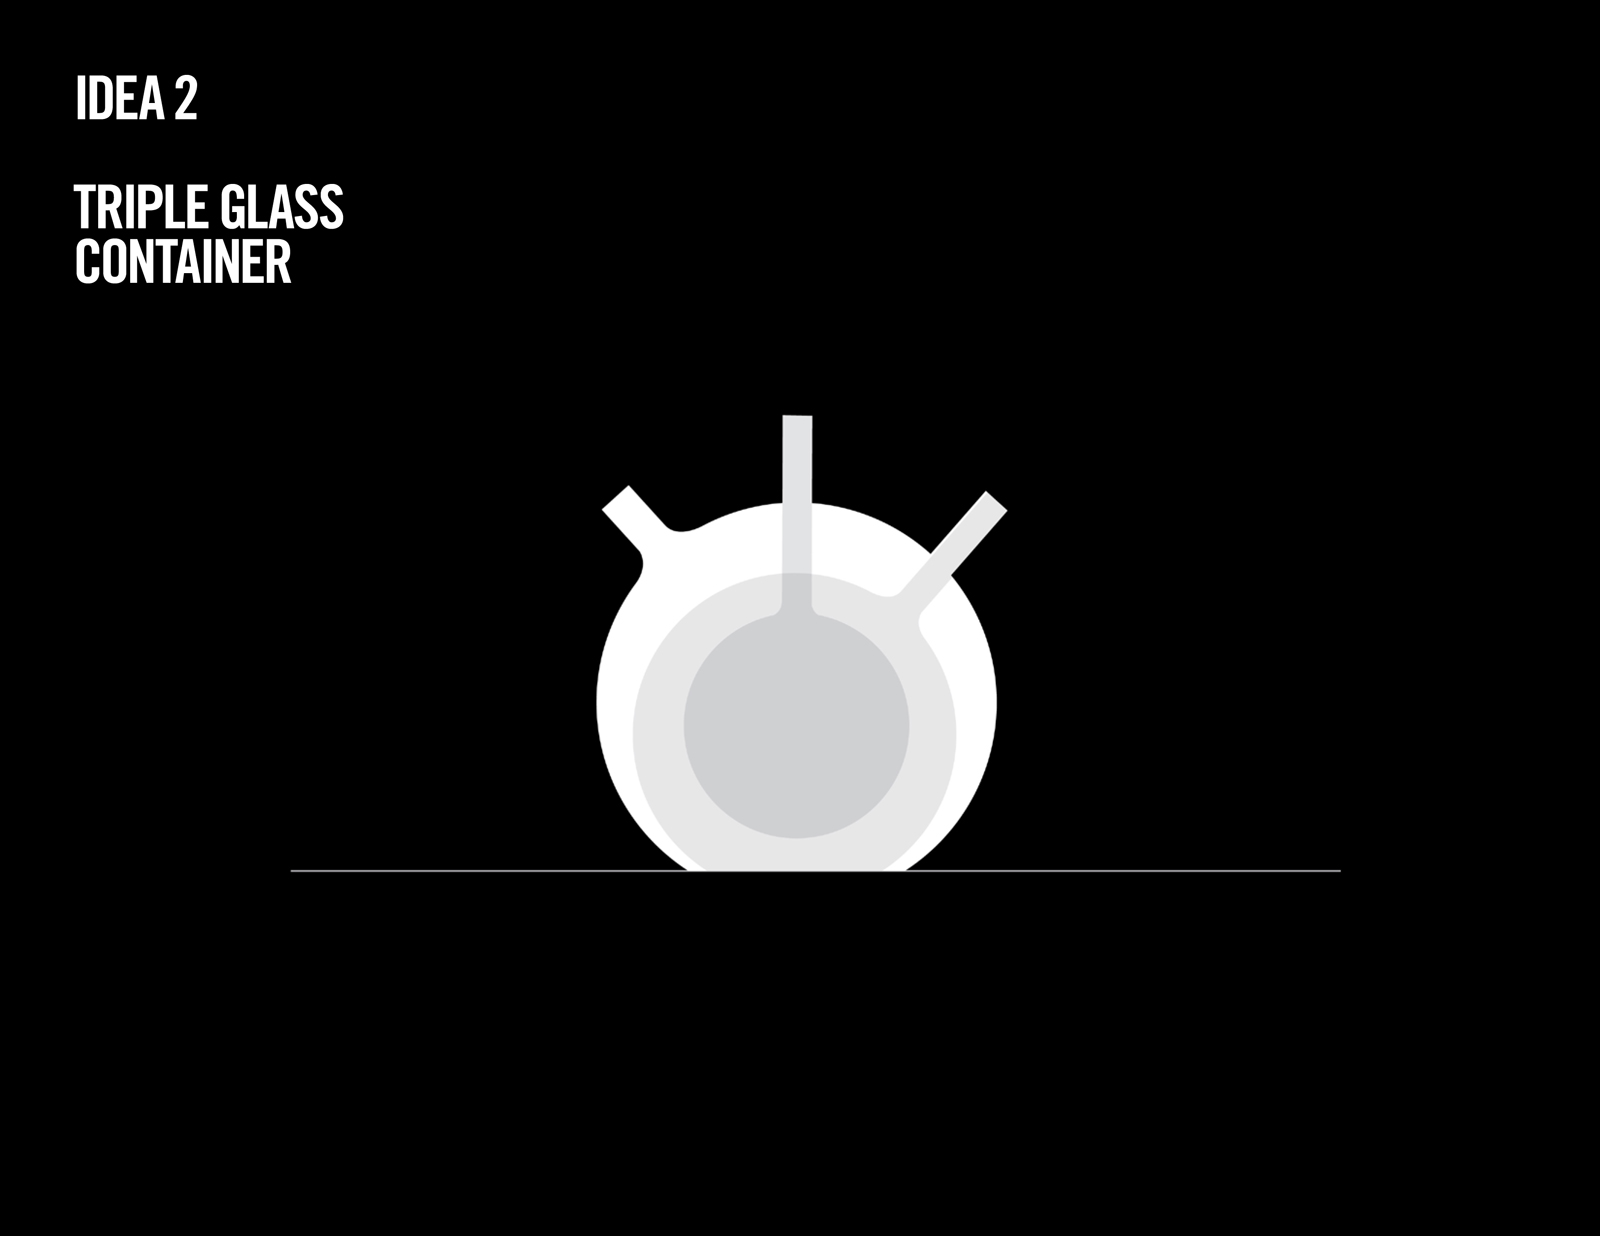 Design concept by Eric Ku for GlassLab on Governors Island 2012